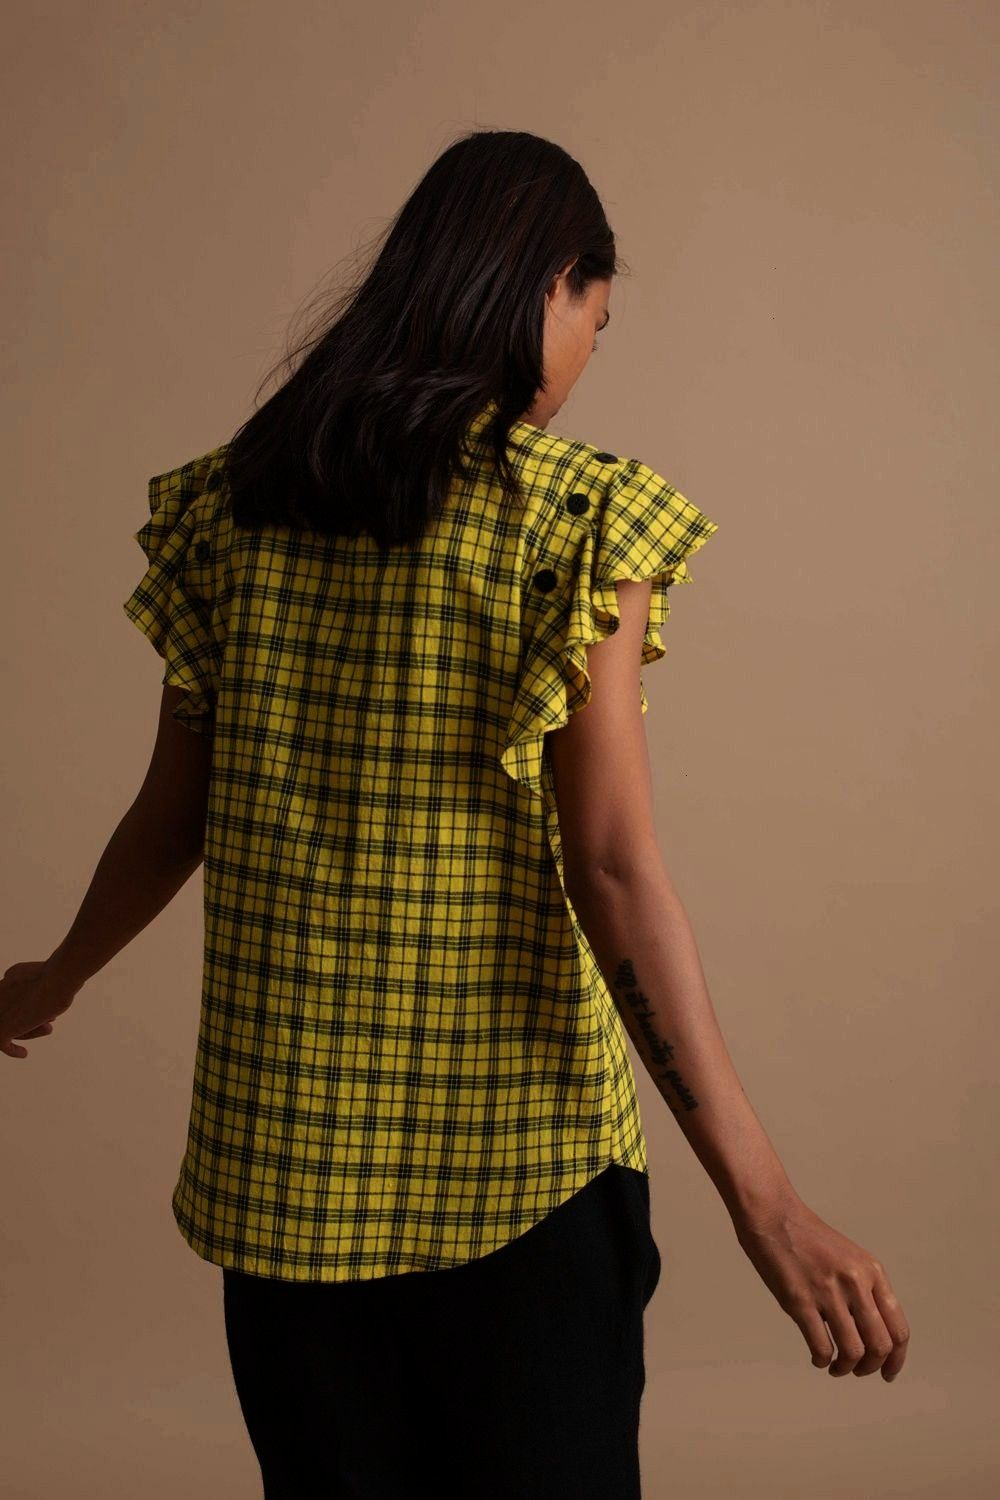 Top from Kanelle The Detachable Sleeve top is crafted from handspin cotton in a yellow and black checkered pattern The straight fit top comes with detachable frills that...